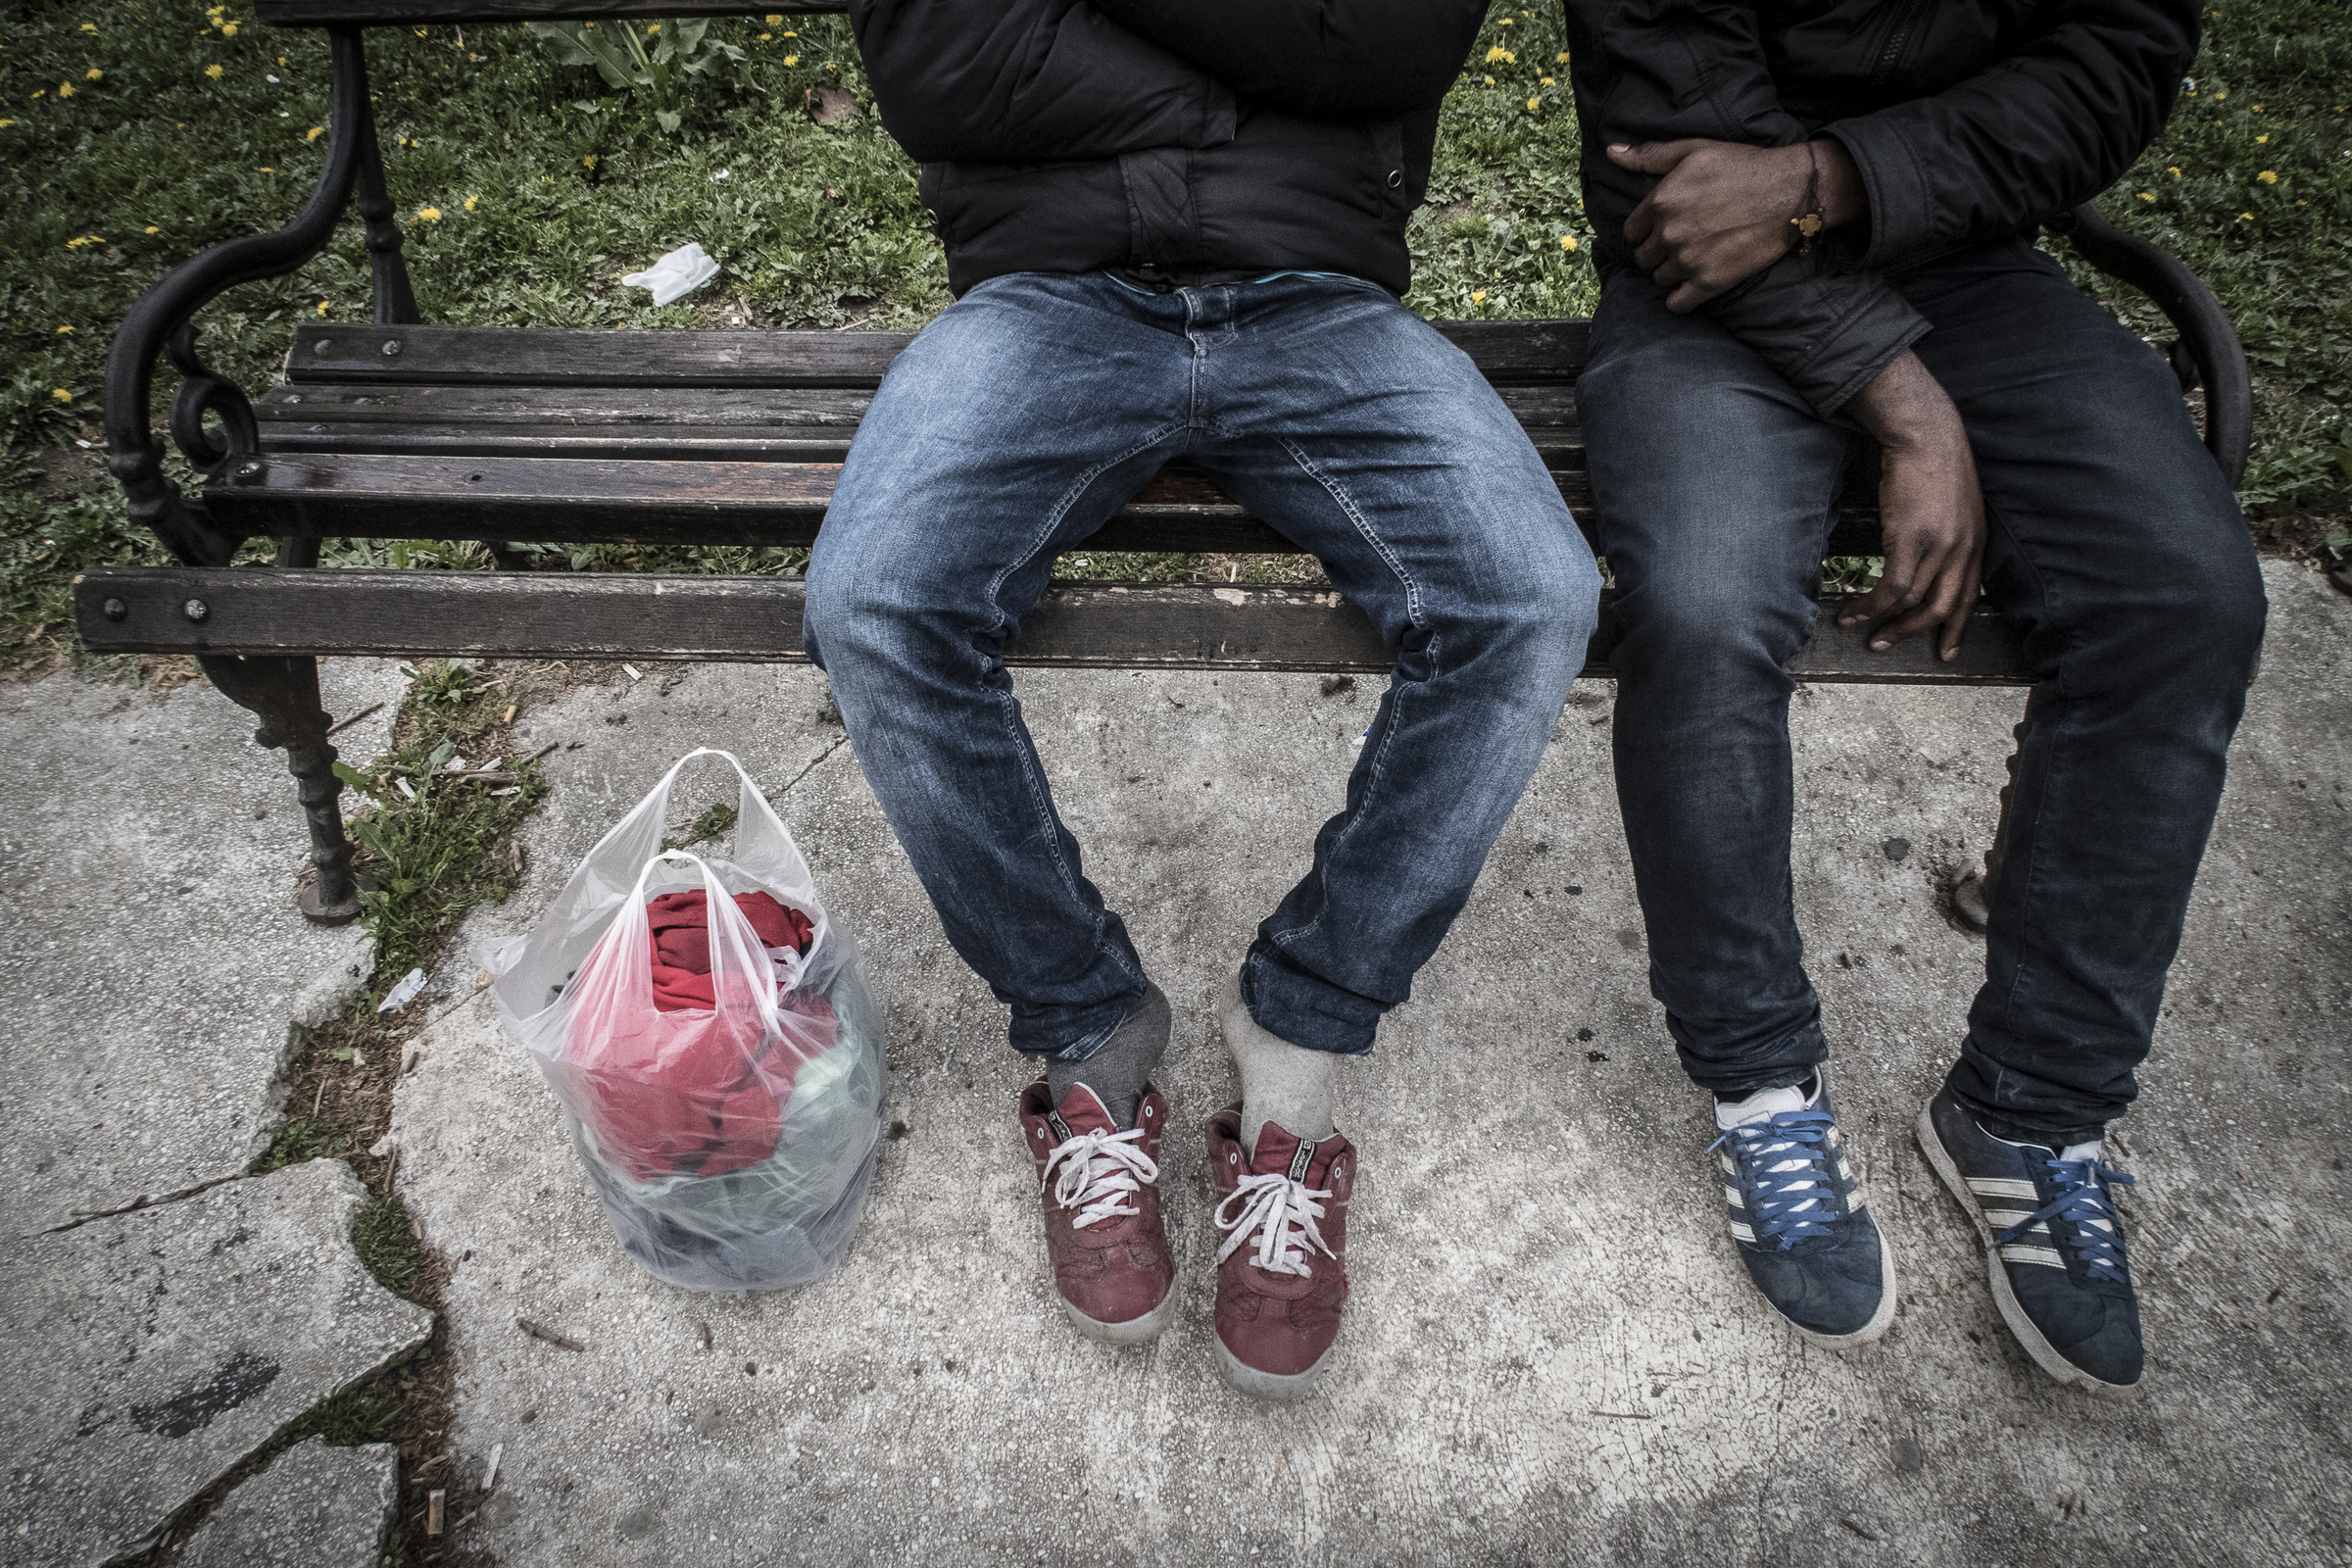 Asylum seekers from Nigeria just arrived in Belgrade with only a plastic bag and their clothes. They had to abandon their backpacks in Macedonia when they escaped their kidnappers.